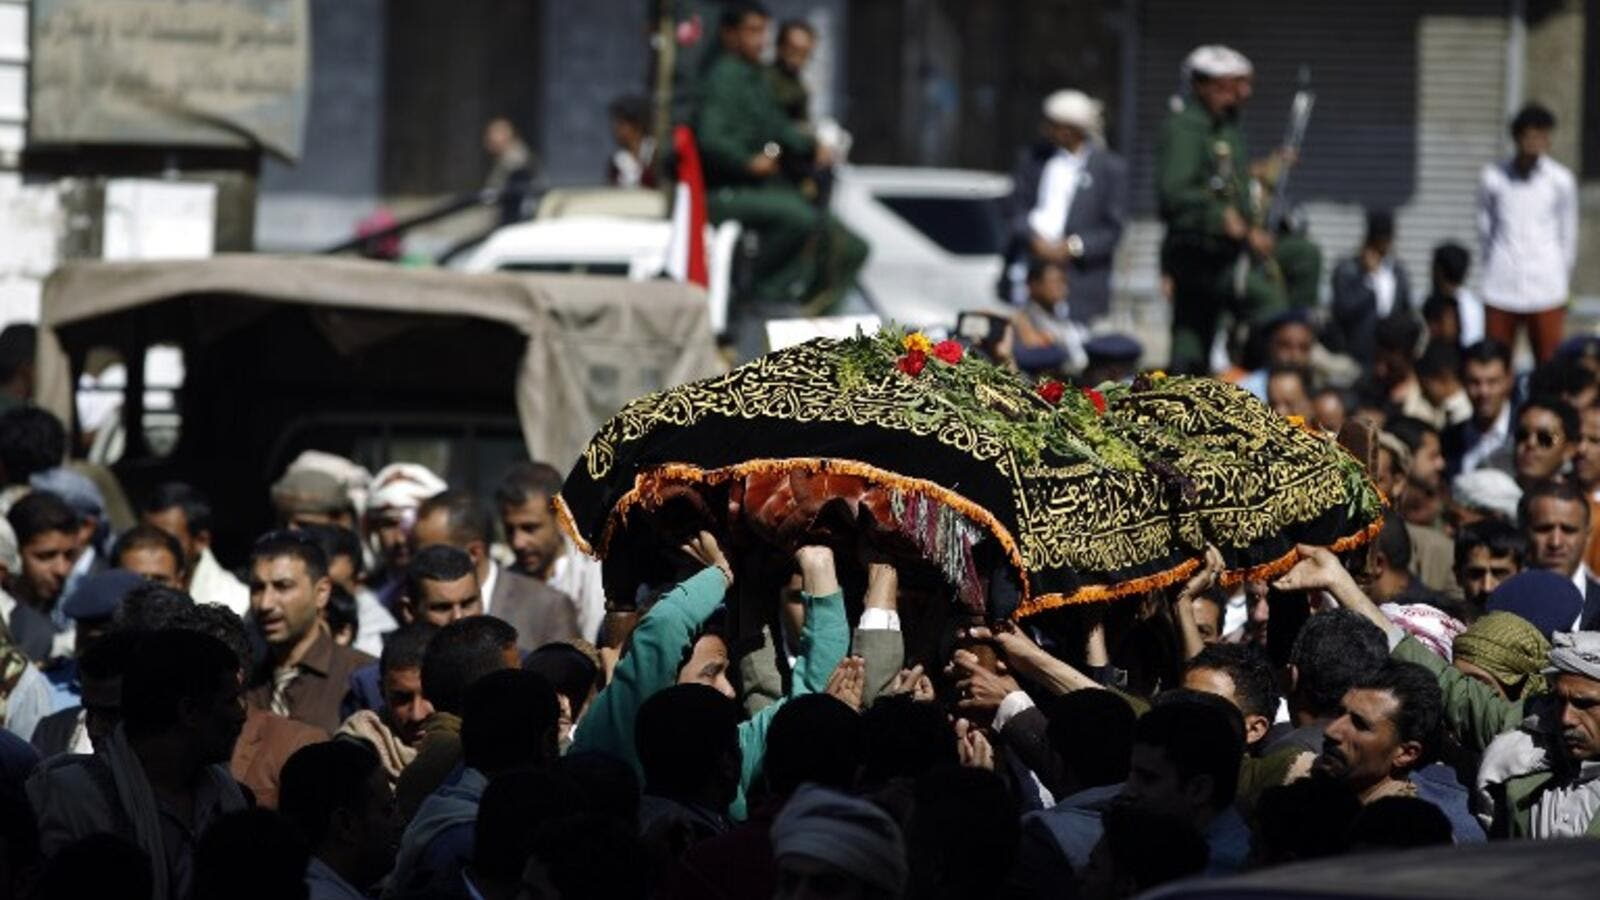 Yemeni mourners carry the coffin of Abdel Qader Hilal, the mayor of the capital Sanaa, on October 10, 2016 after he was killed in an air strike on a funeral in the Yemeni capital three days ago. (AFP/Mohammed Huwais)